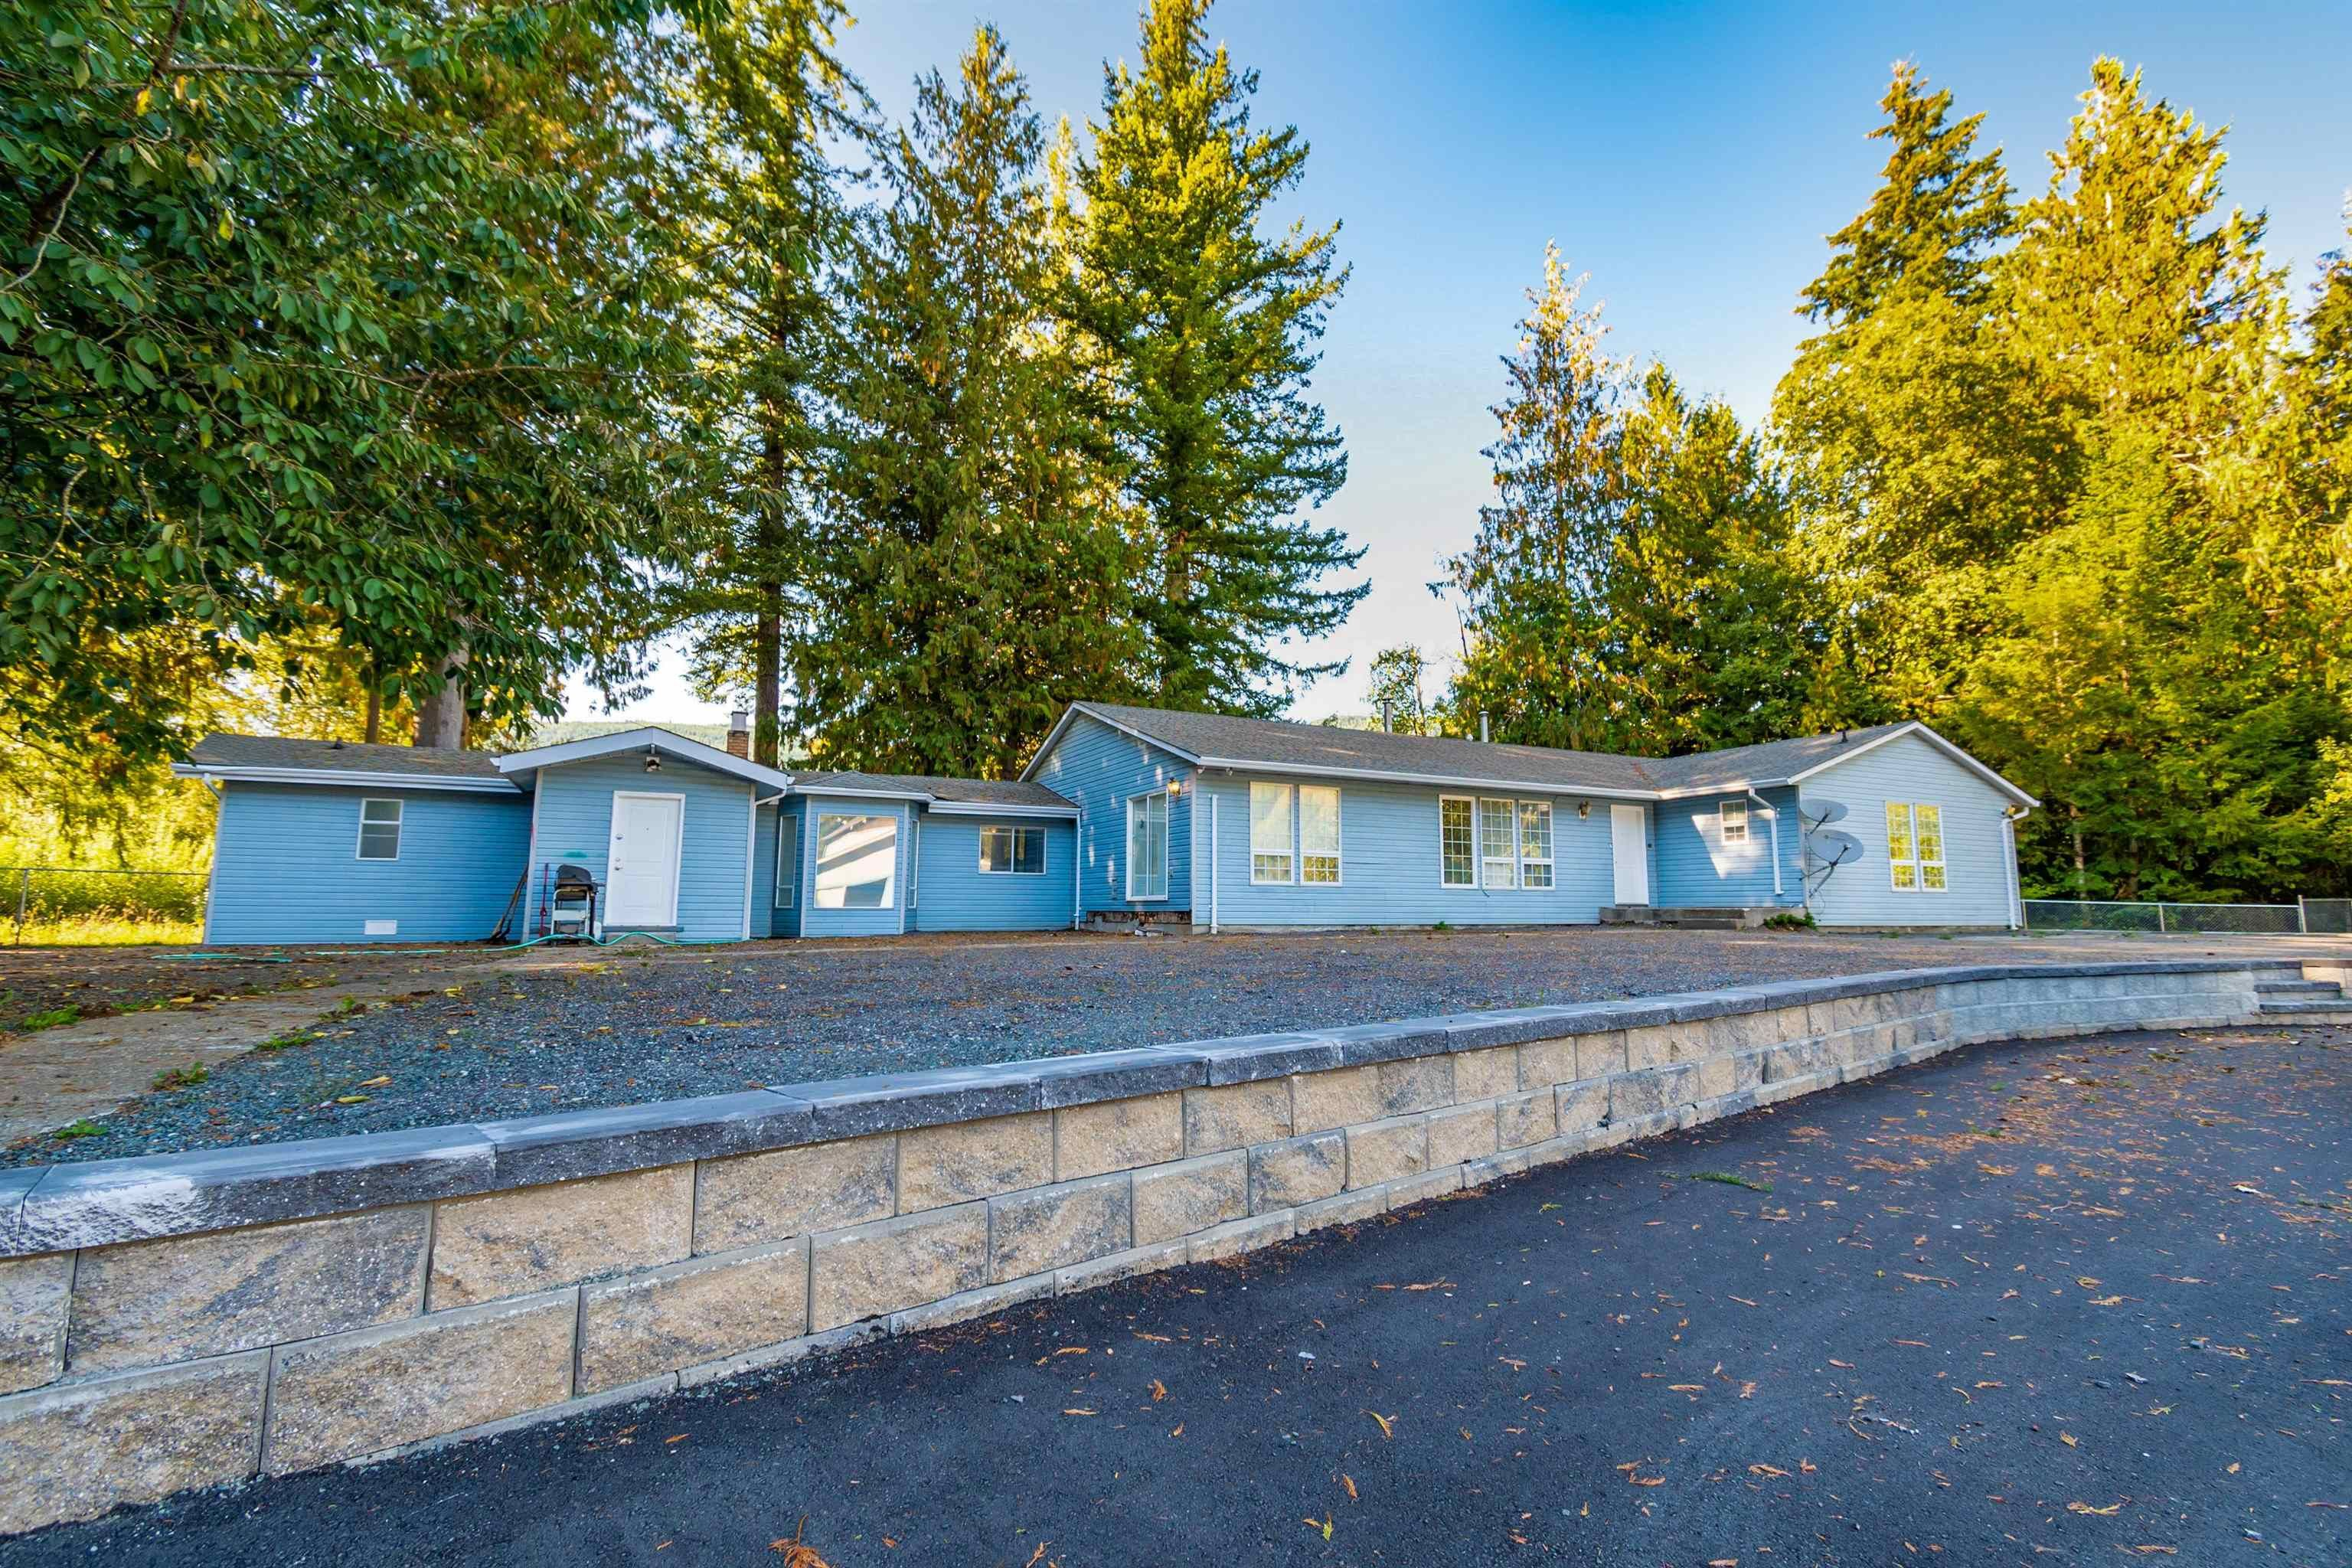 Main Photo: 500 MAPLE FALLS Road: Columbia Valley House for sale (Cultus Lake)  : MLS®# R2620570